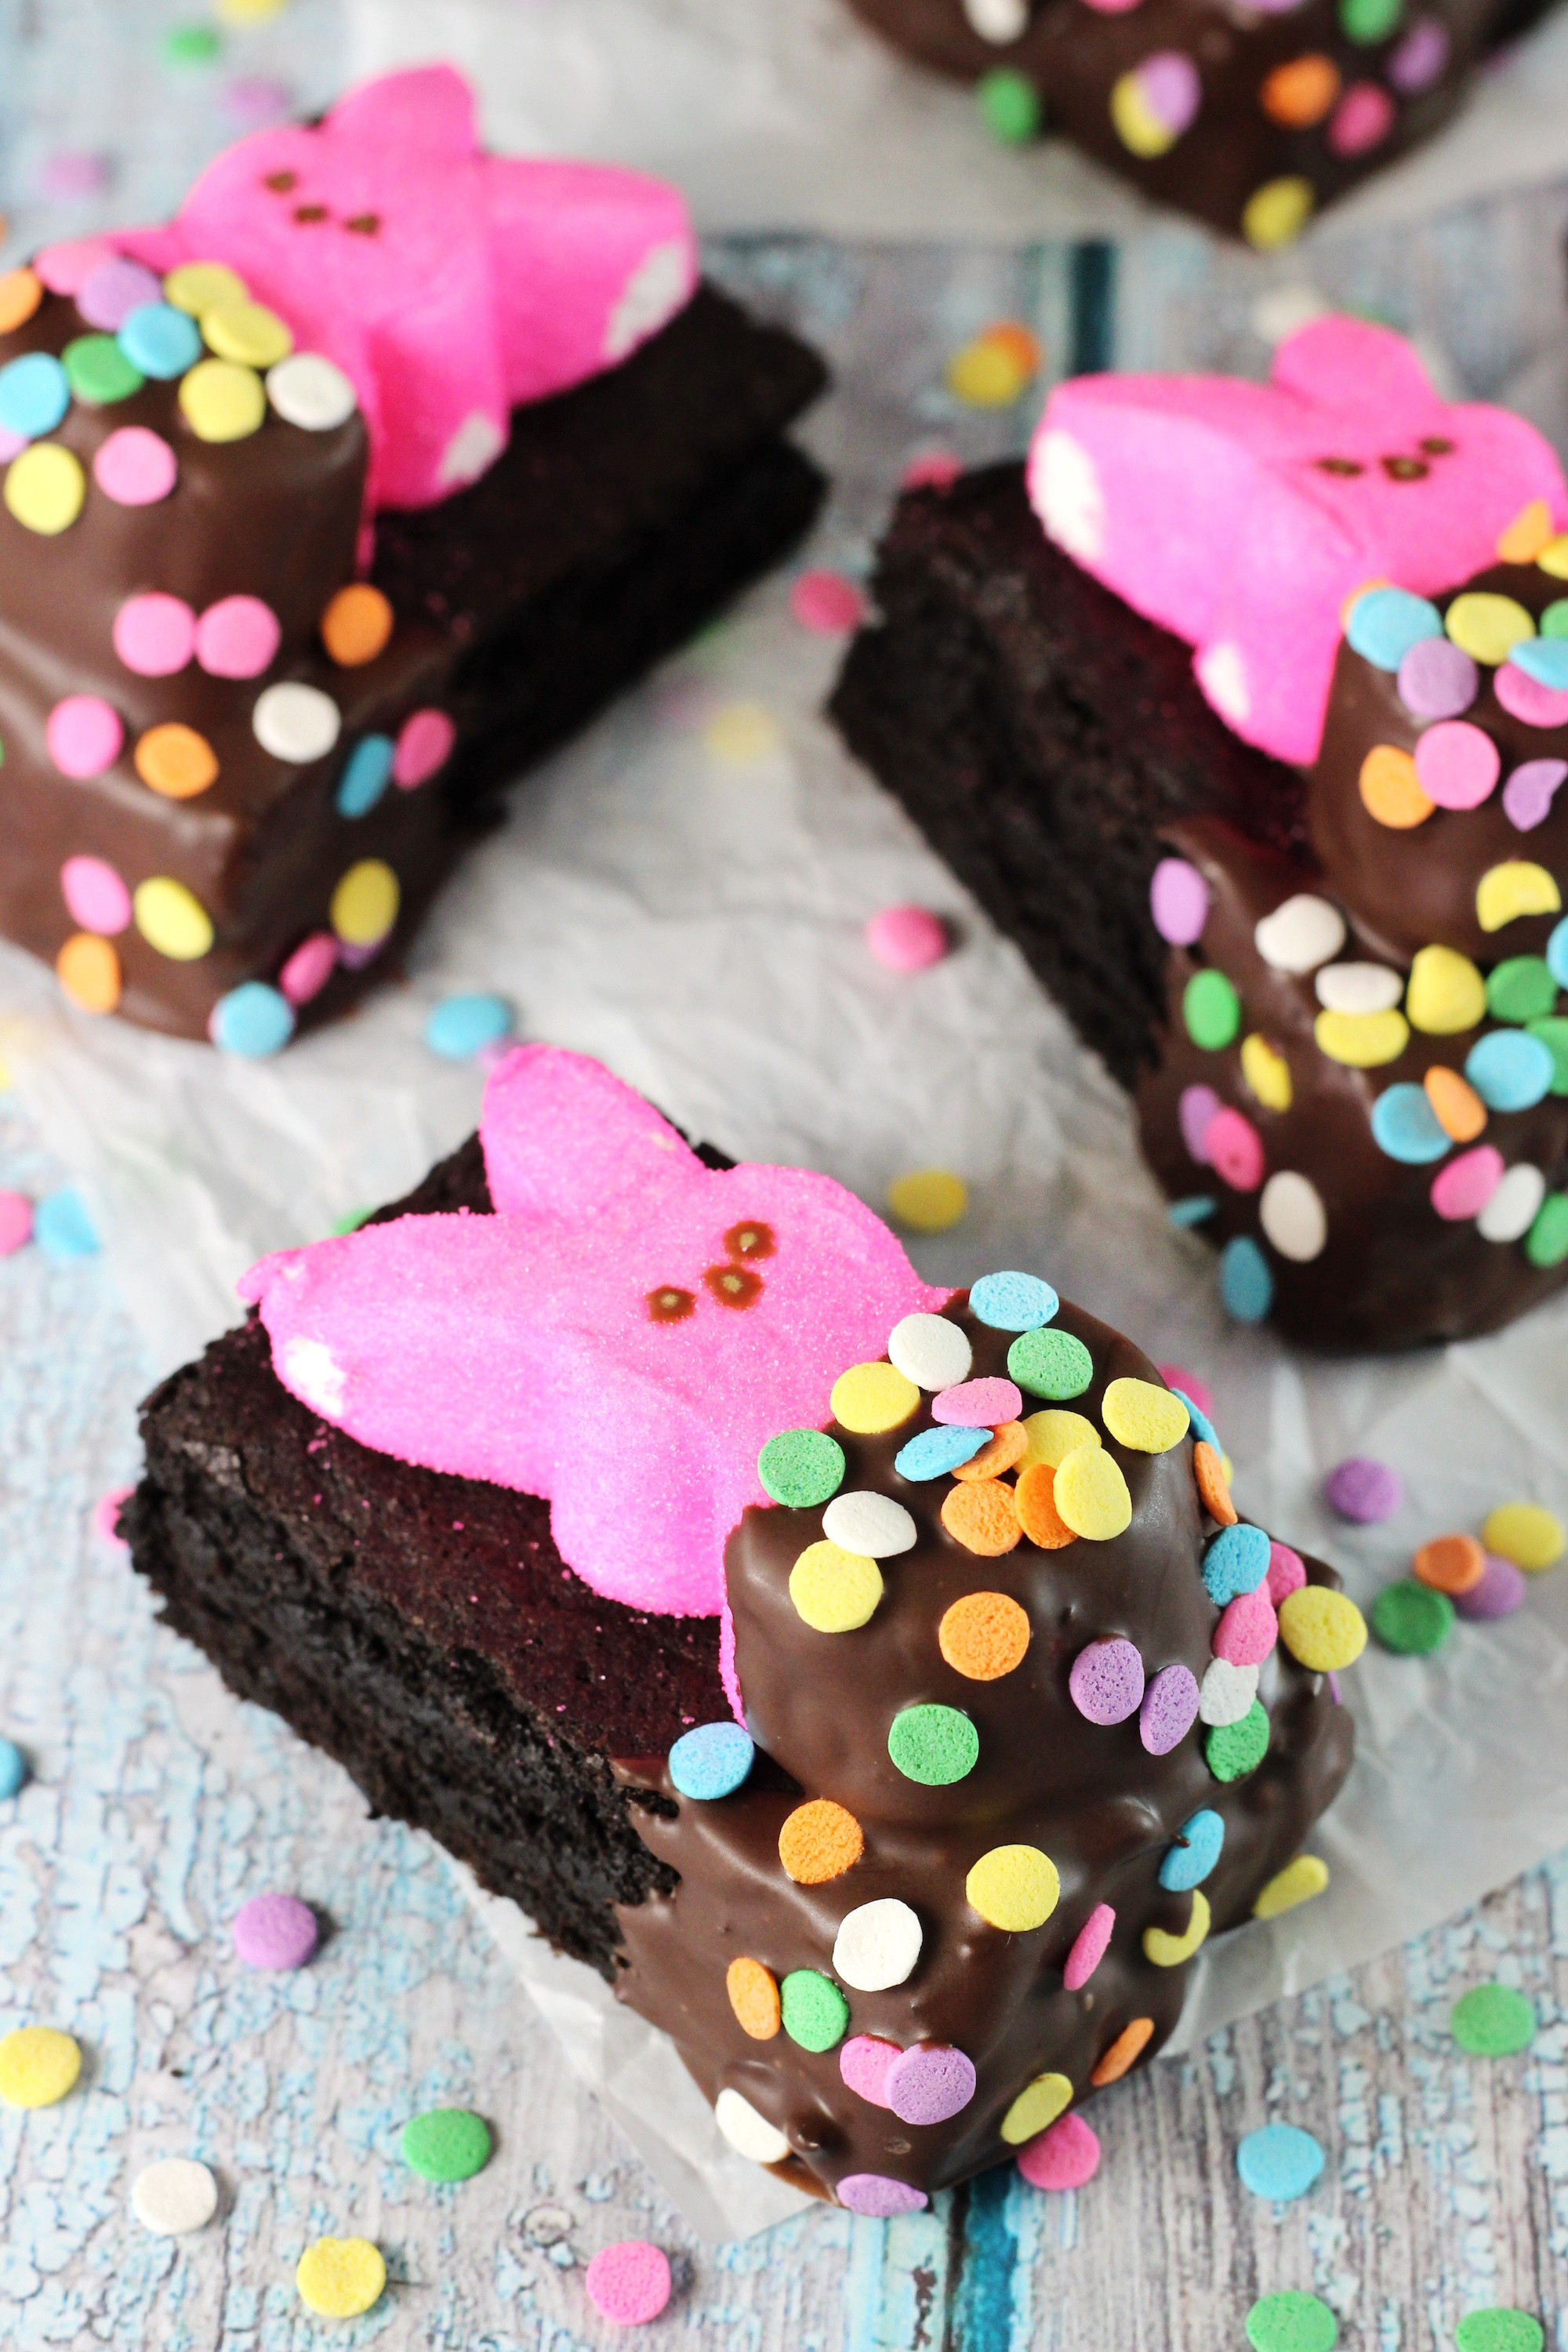 Dessert For Easter  11 Easy Easter Desserts That Are Almost Too Adorable To